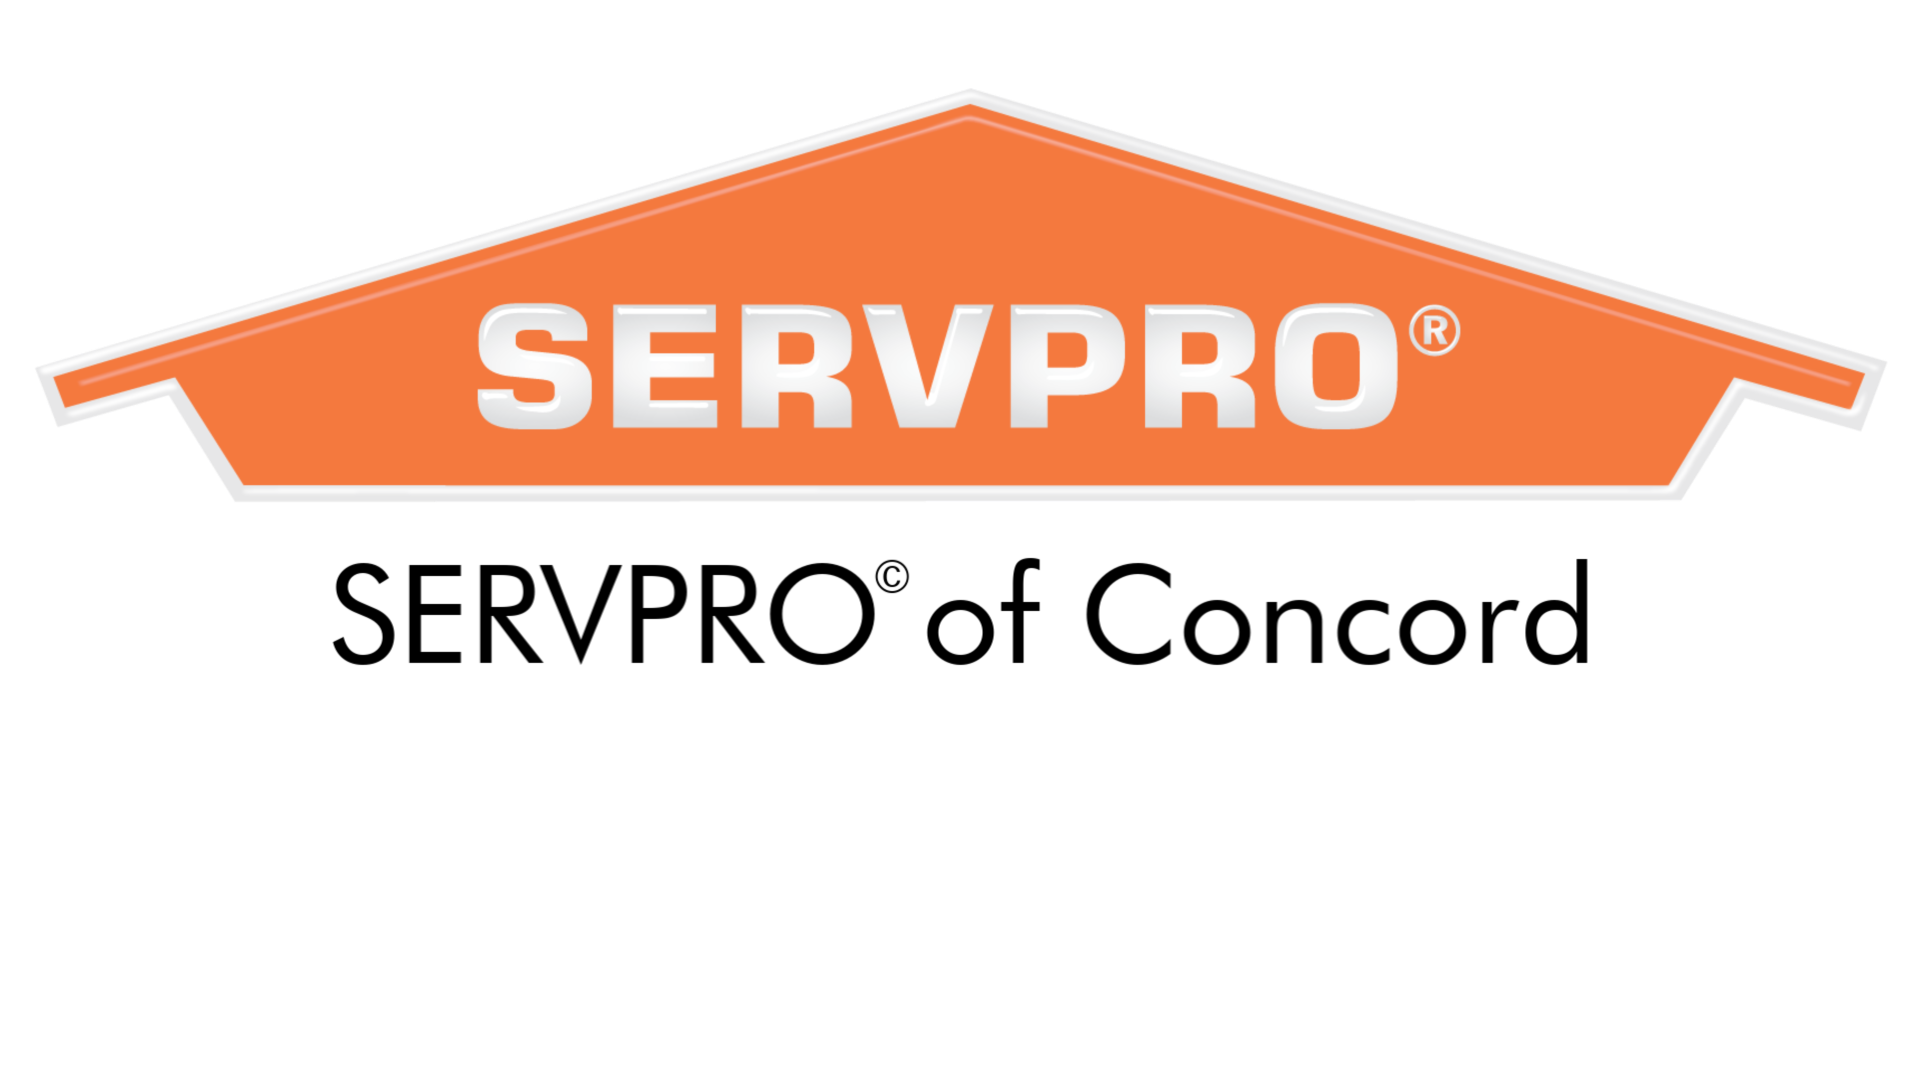 Servpro of Concord